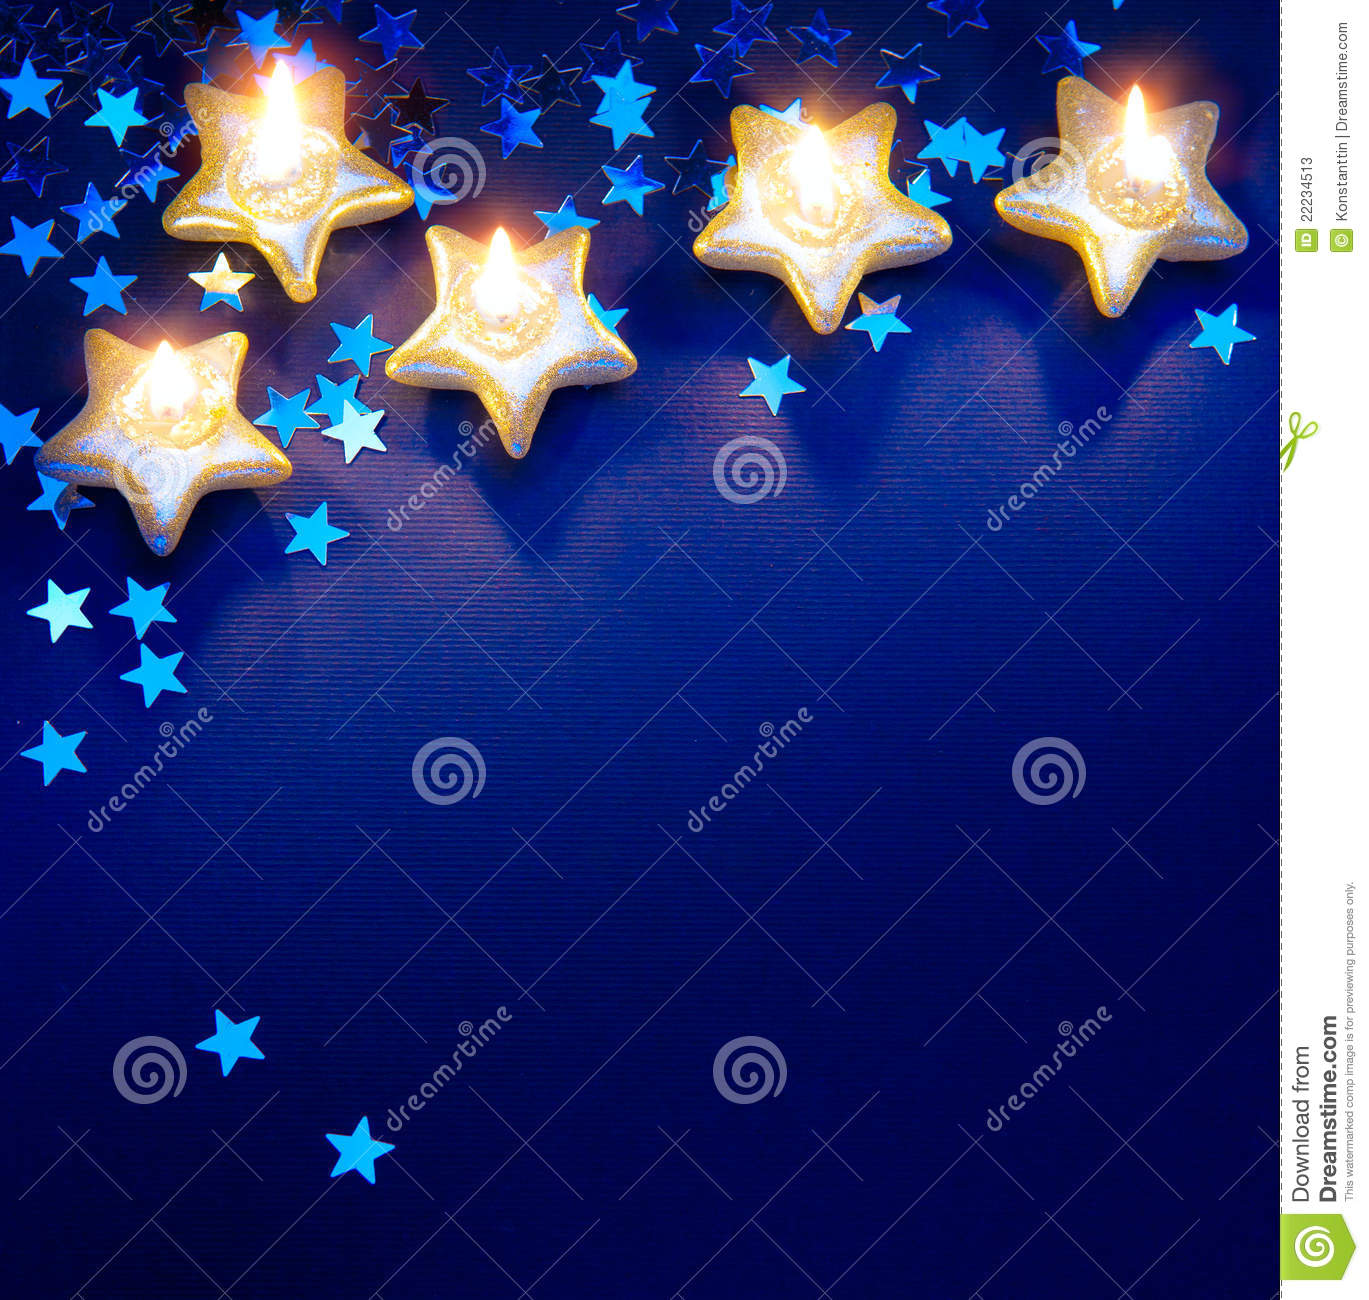 Design Background For Christmas Greetings Card Stock Image Image